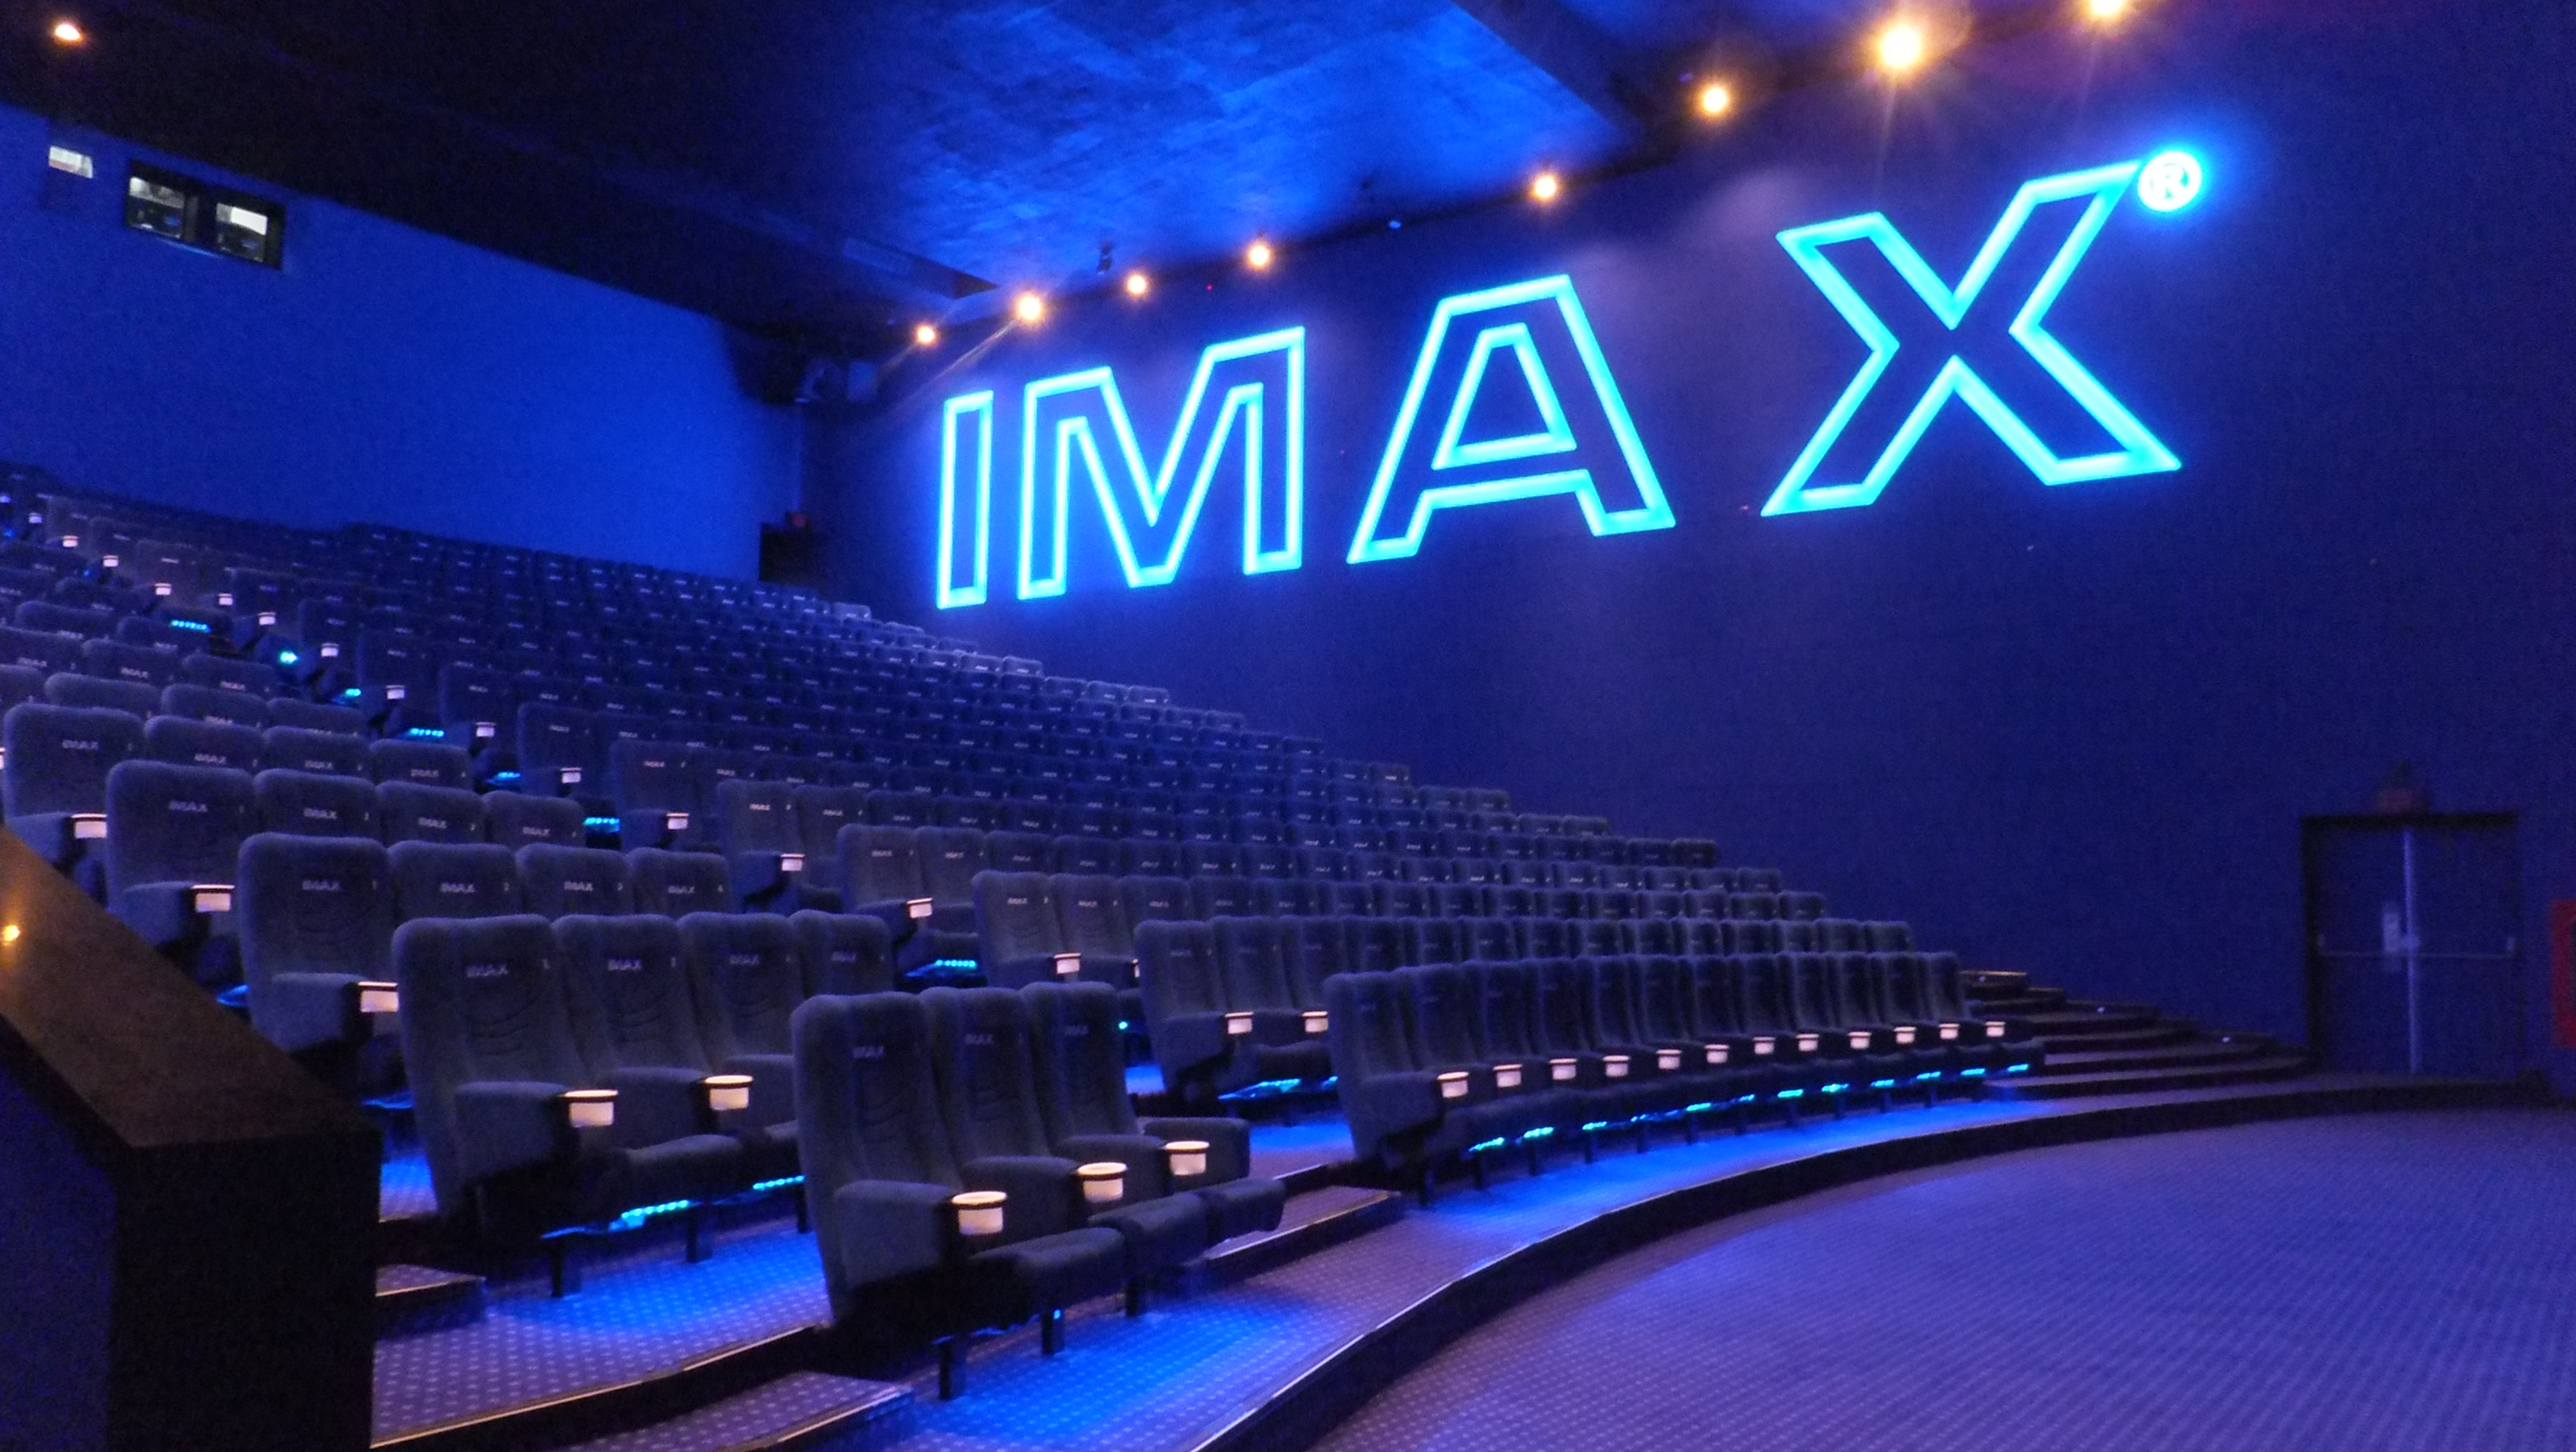 Inside IMAX theatre